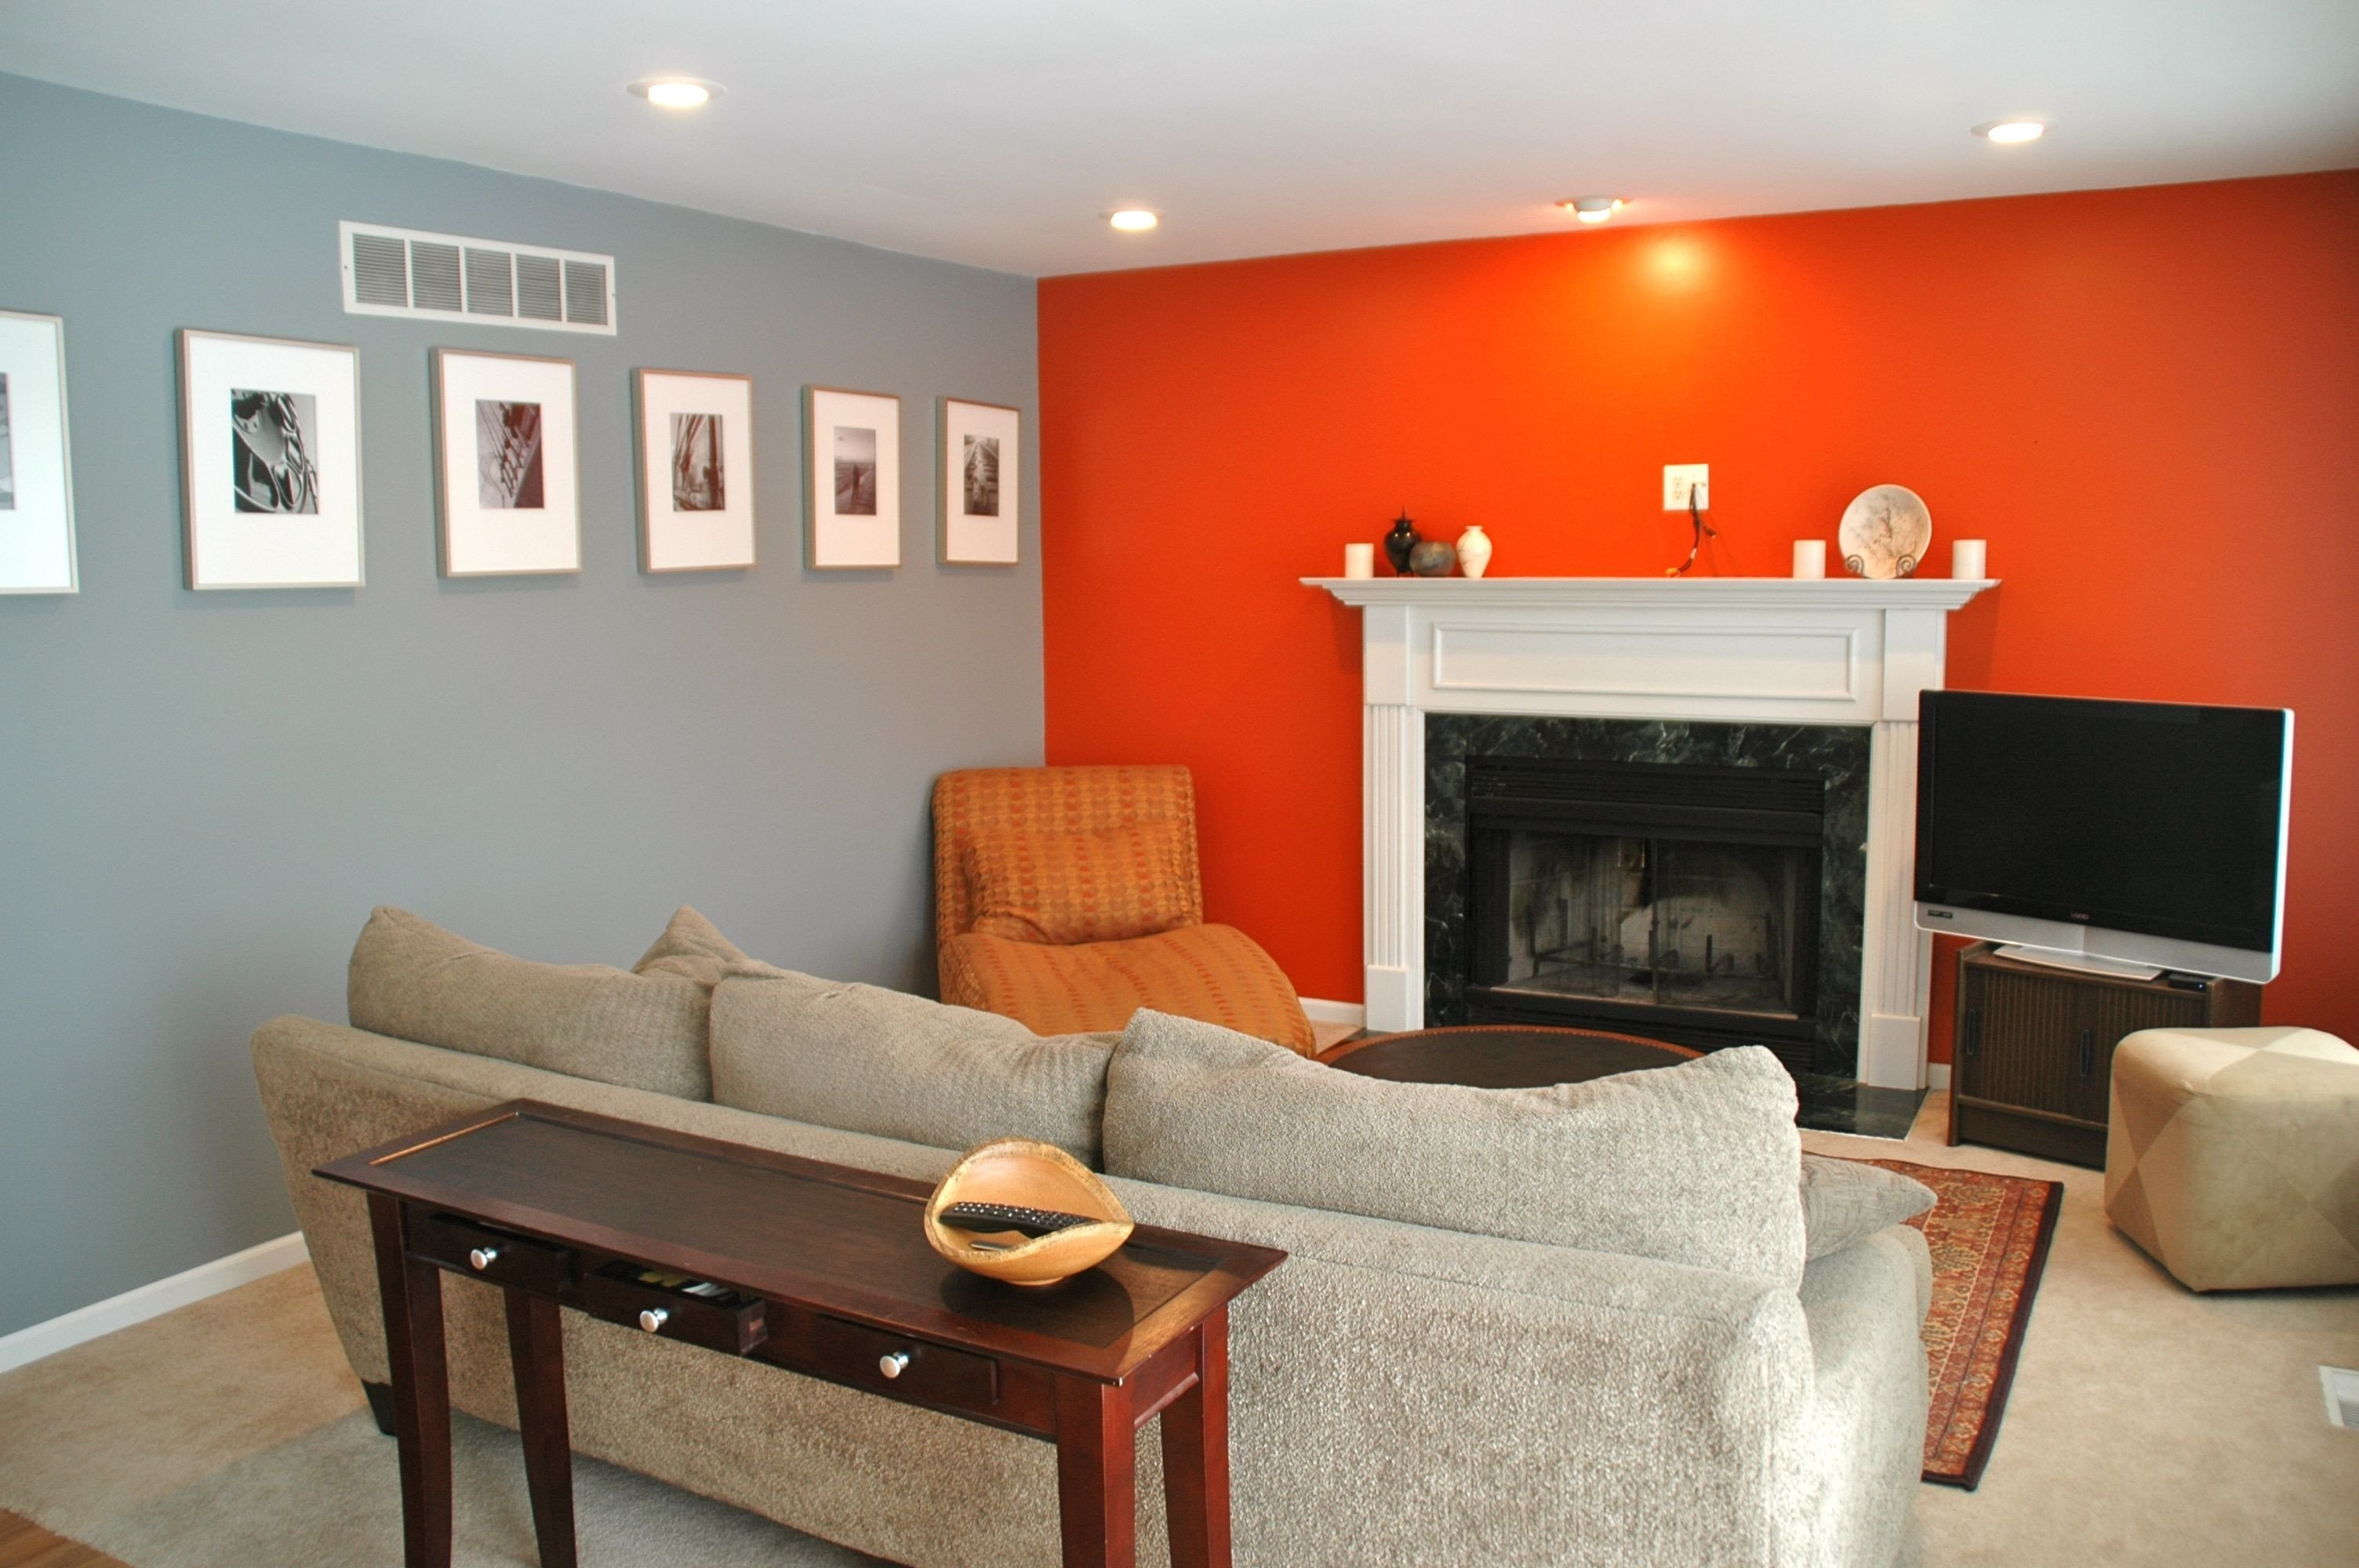 Grey and Red Bedroom Lovely Bedroom with orange and Grey Wall Color Bination Bedroom